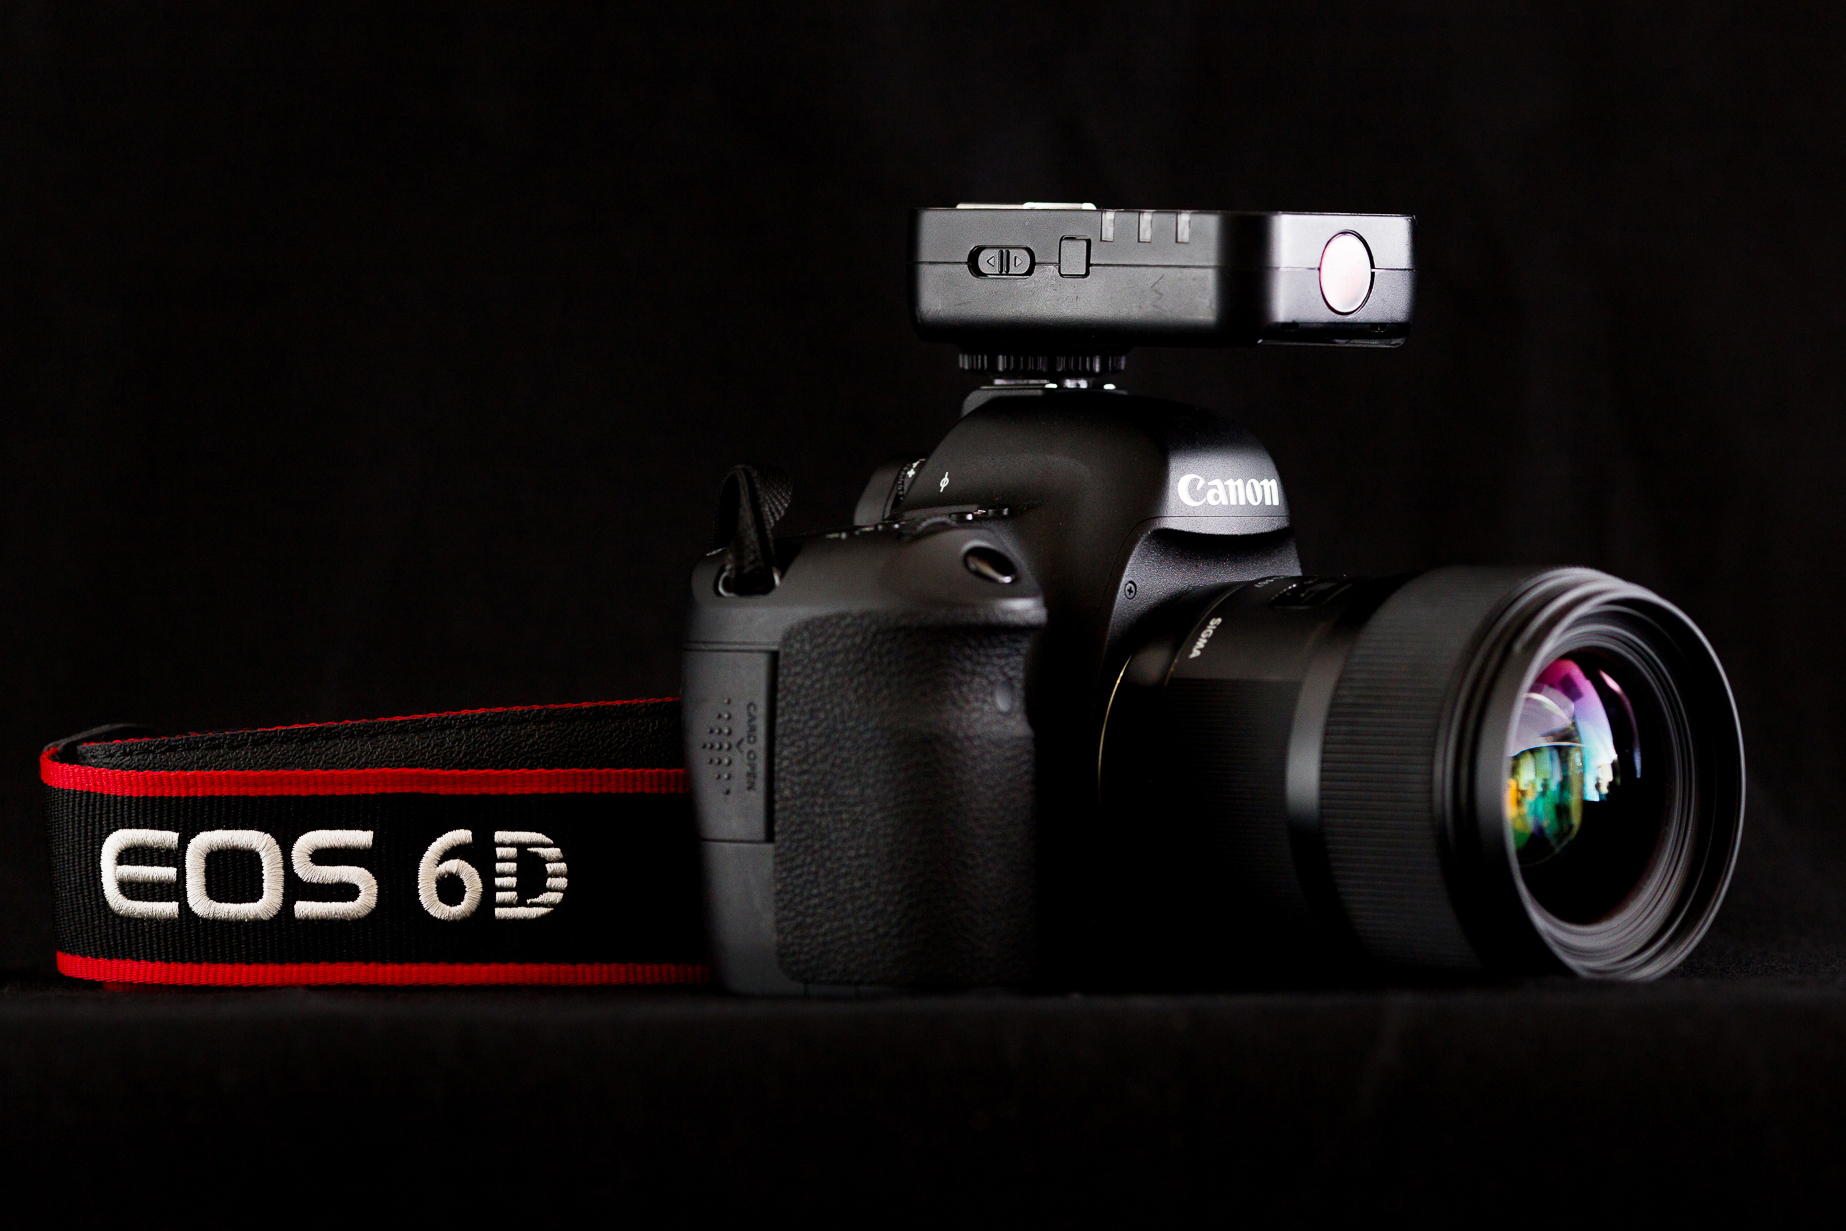 Here's my 6D paired with my Sigma Art 35mm 1.4 and a Yongnuo Yn622c trigger. This is what I use for my BTS photos.